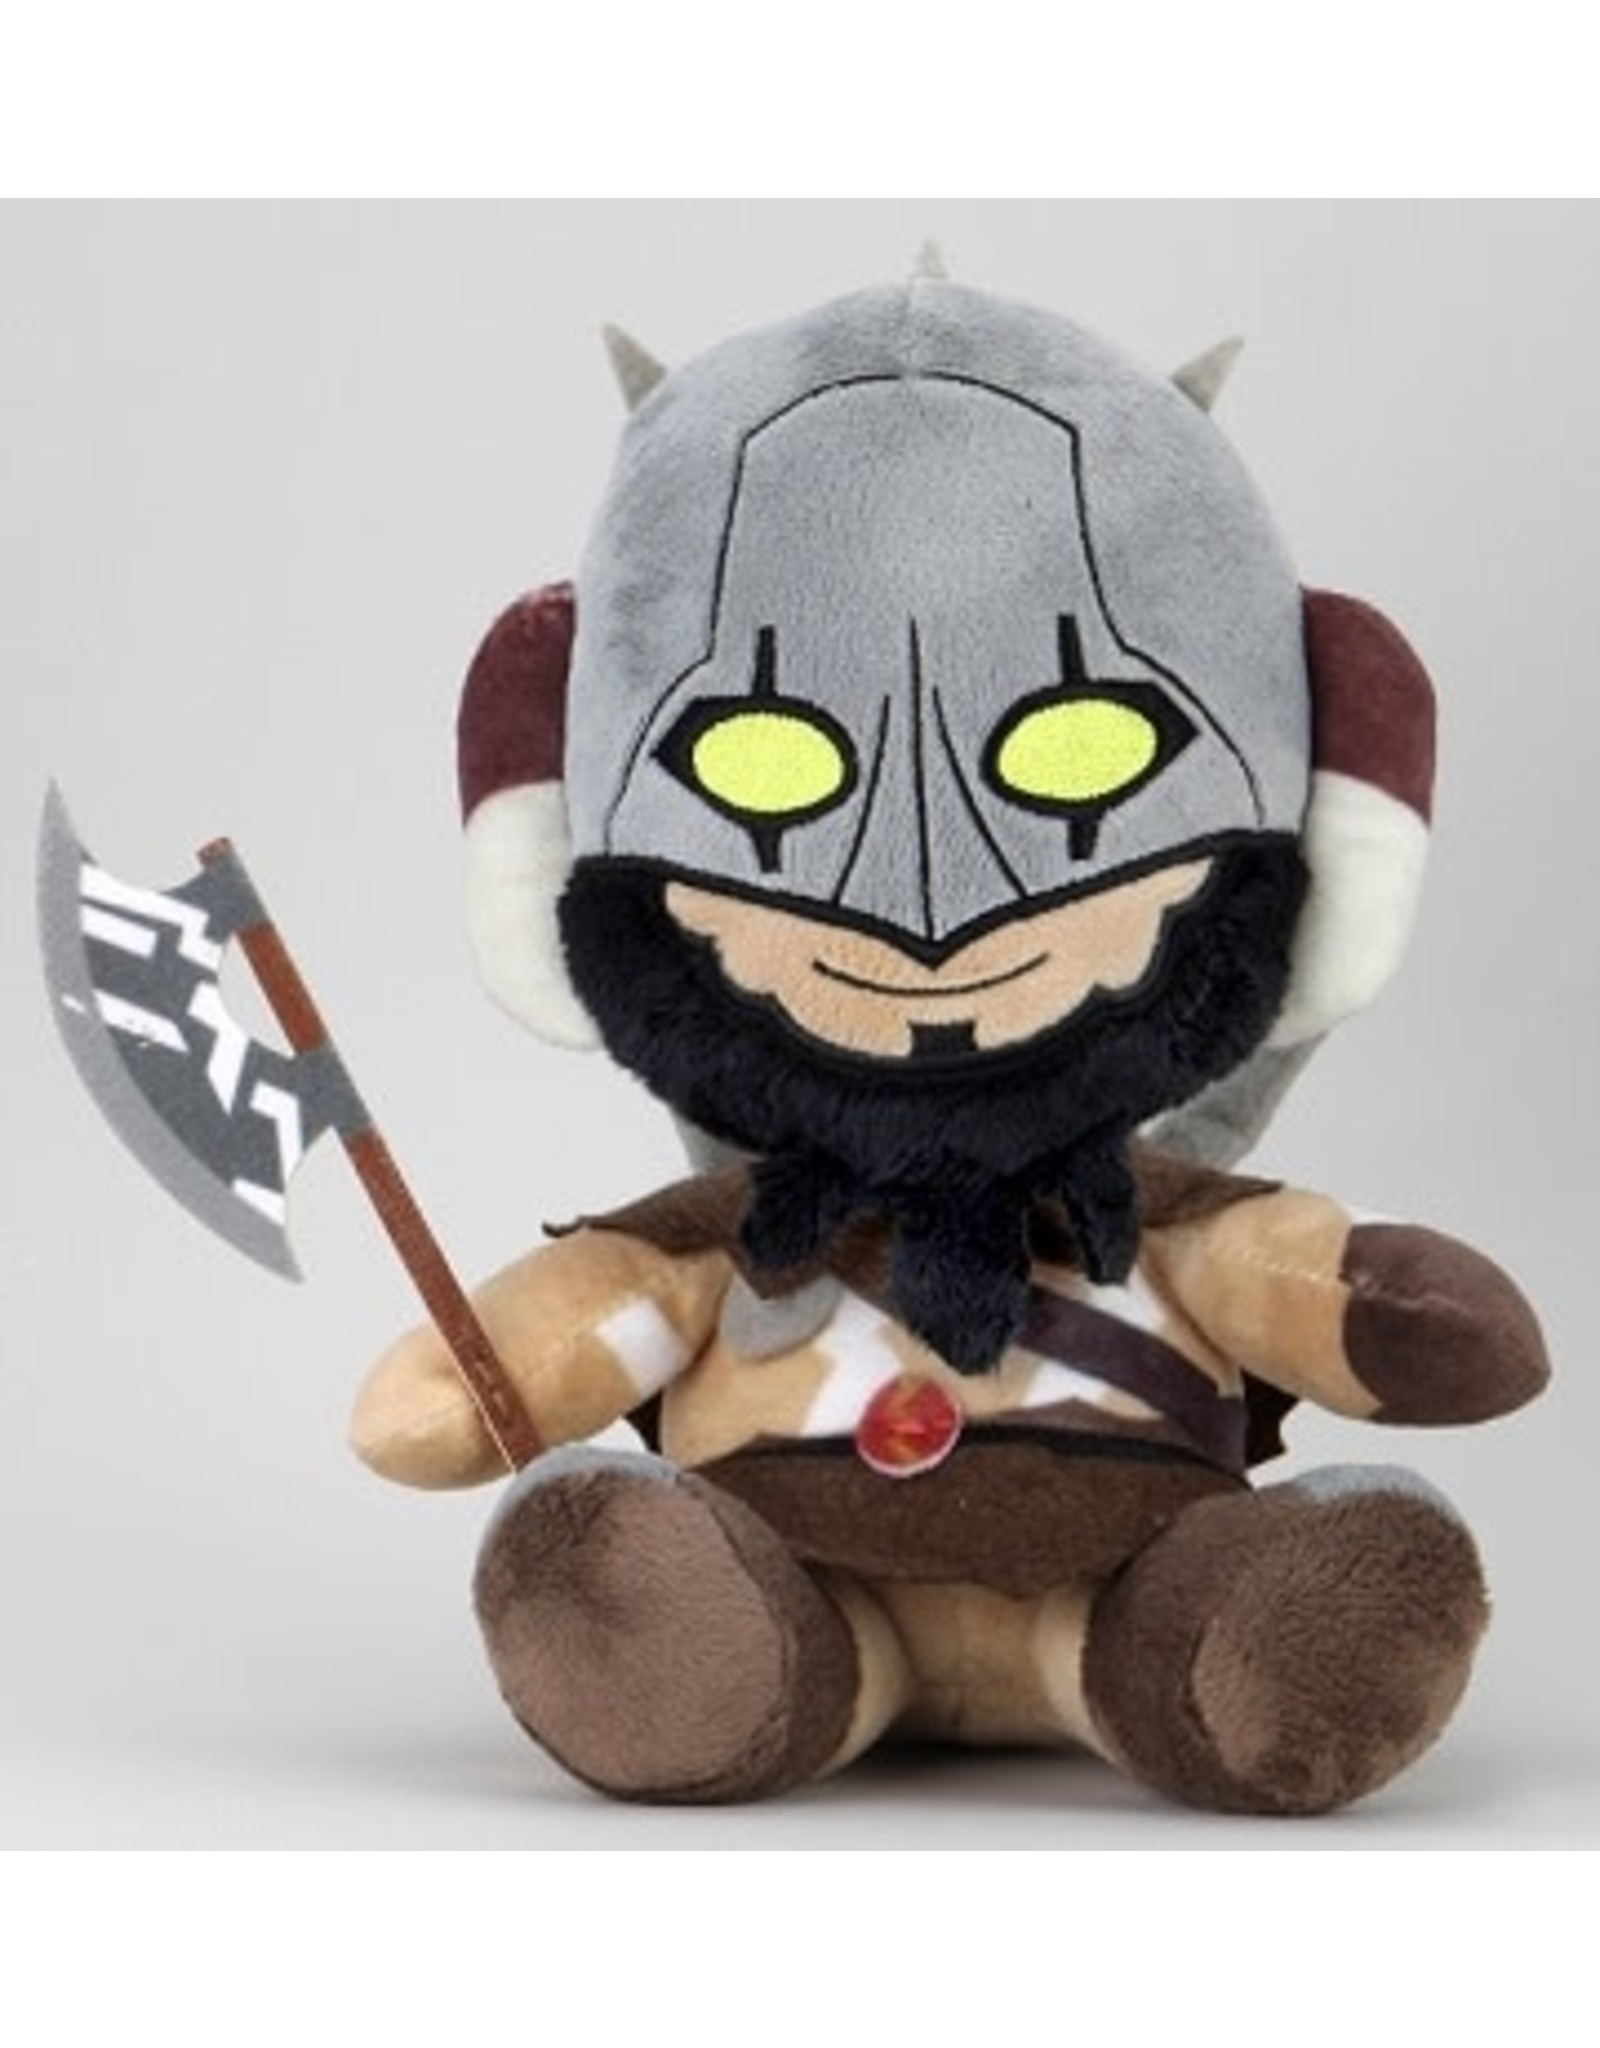 Wizards of the Coast MTG GARRUK PHUNNY BY KIDROBOT PLUSH